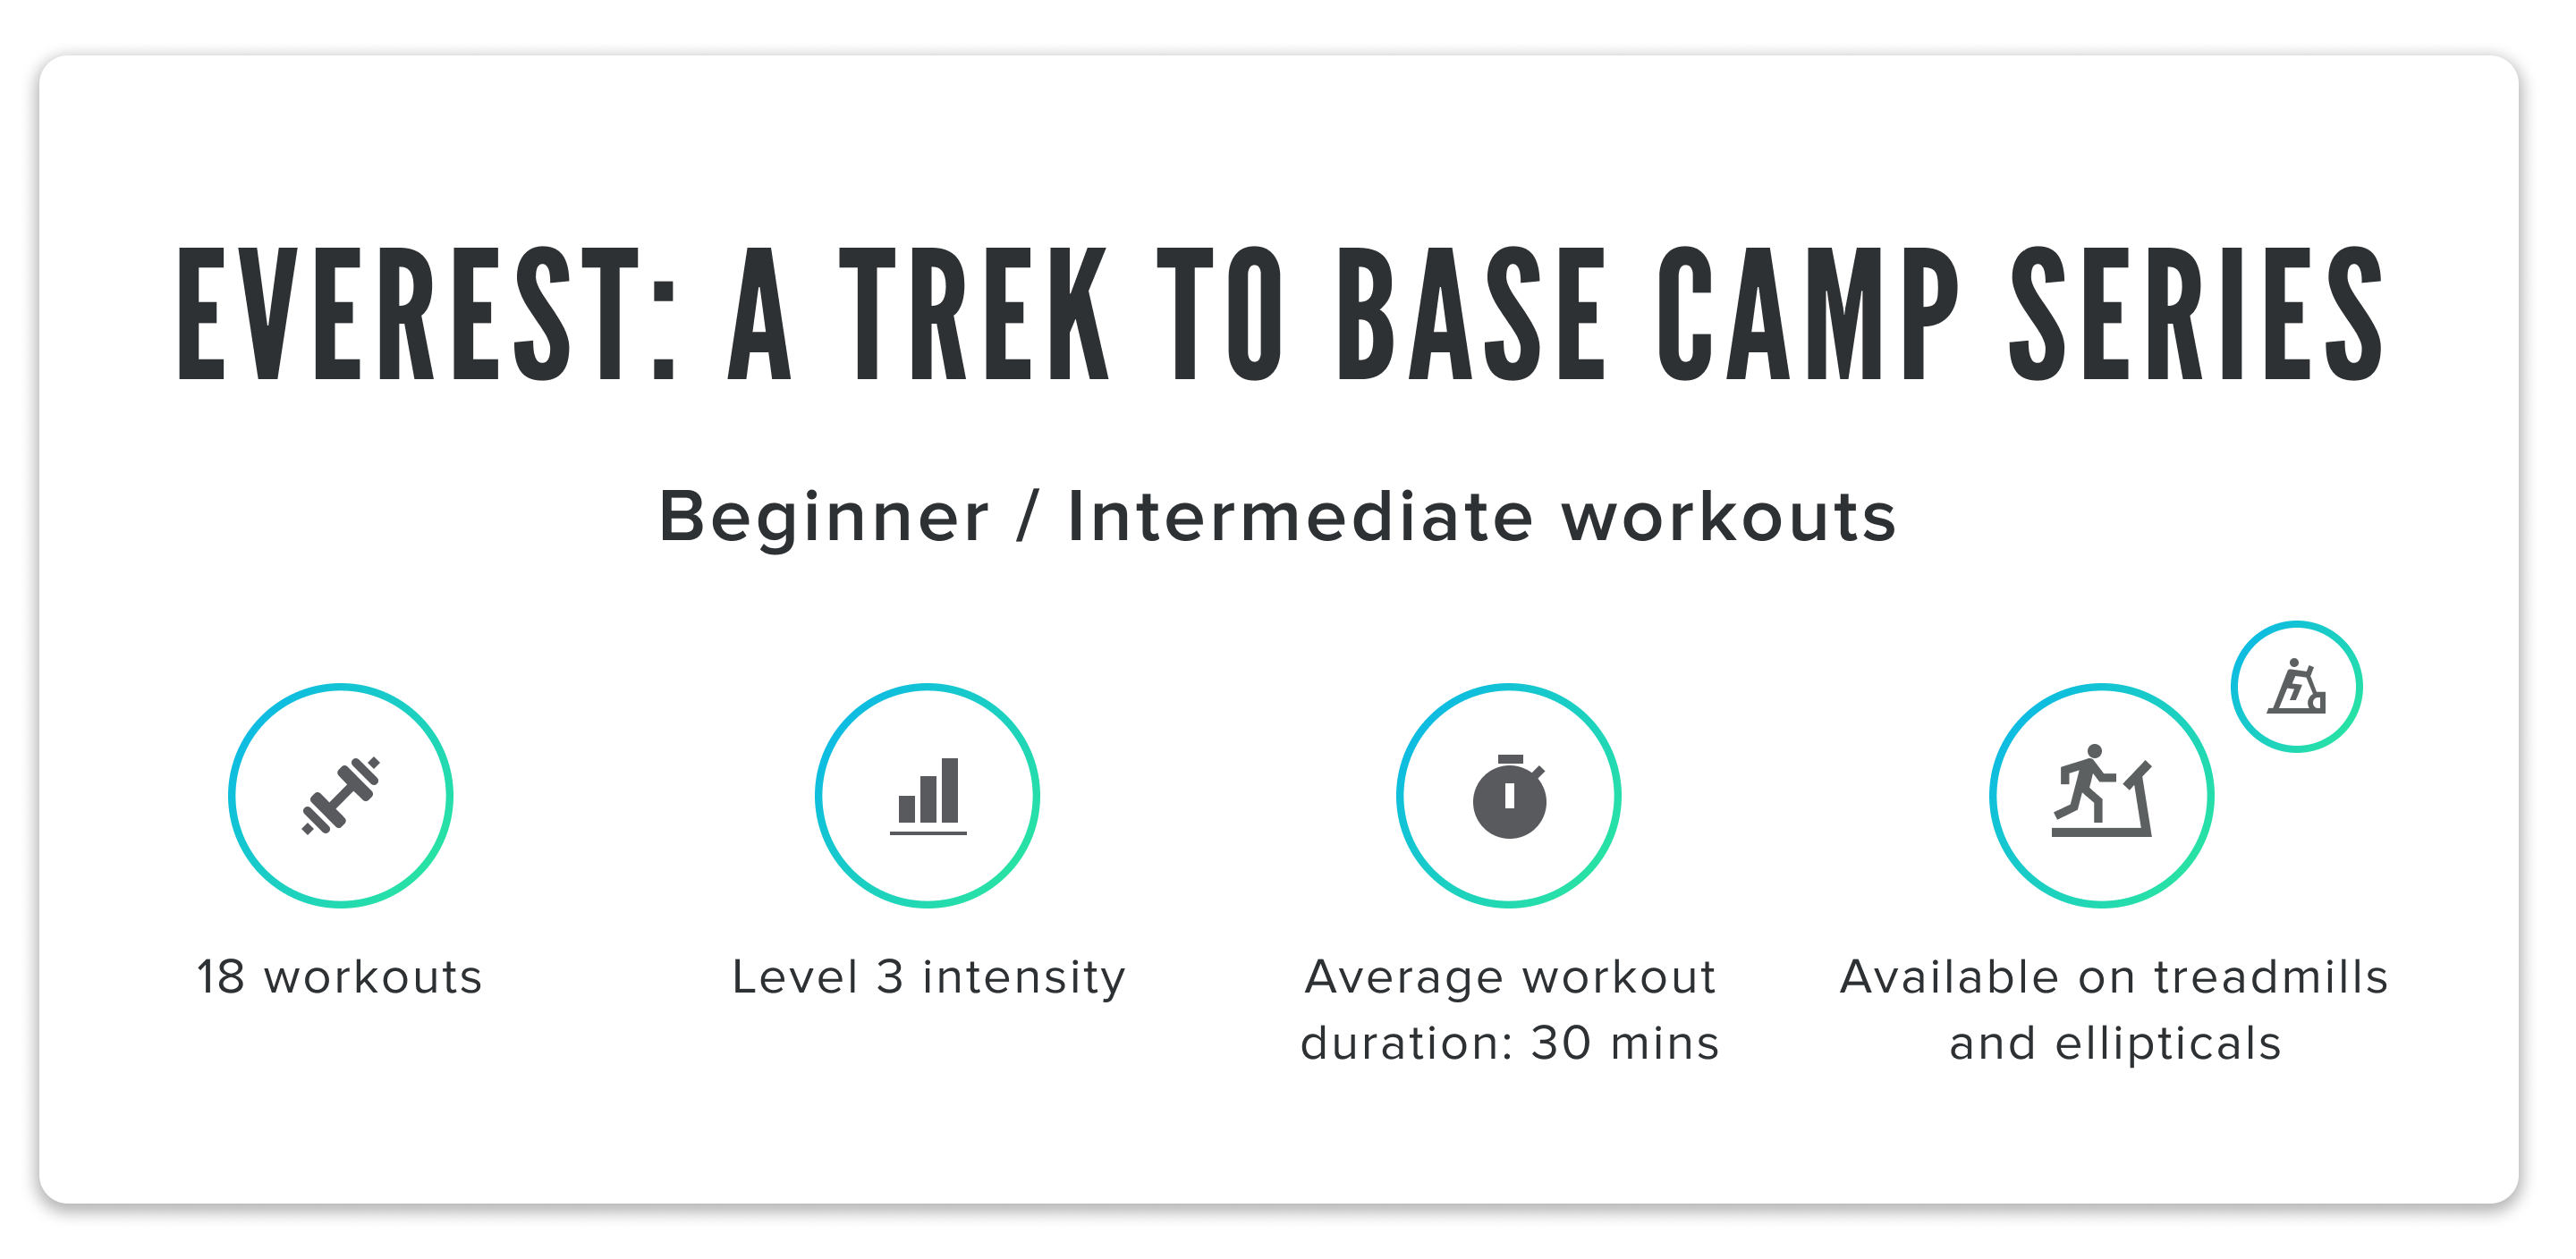 iFIT Everest: A Trek to Base Camp Series chart